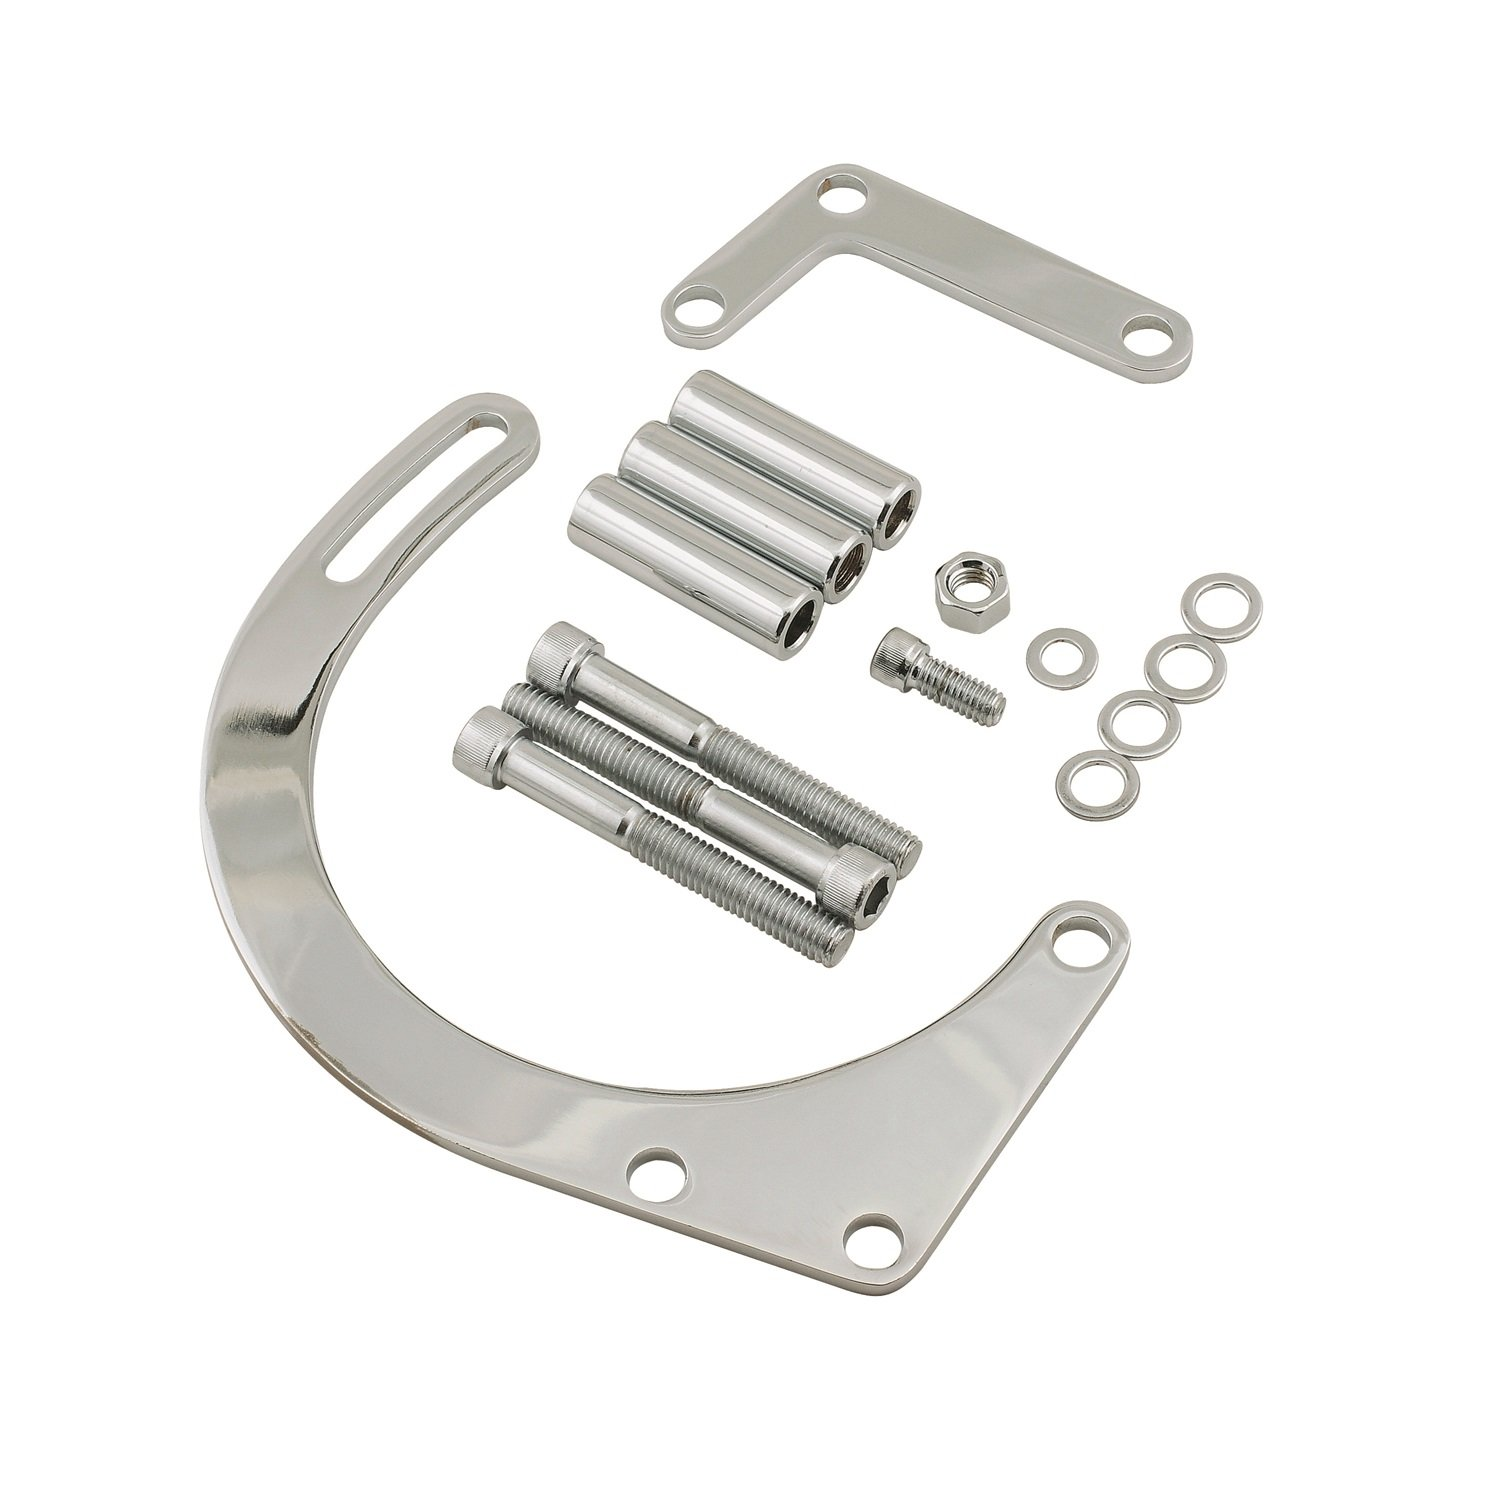 Mr. Gasket 5179 Chrome Plated Alternator Bracket